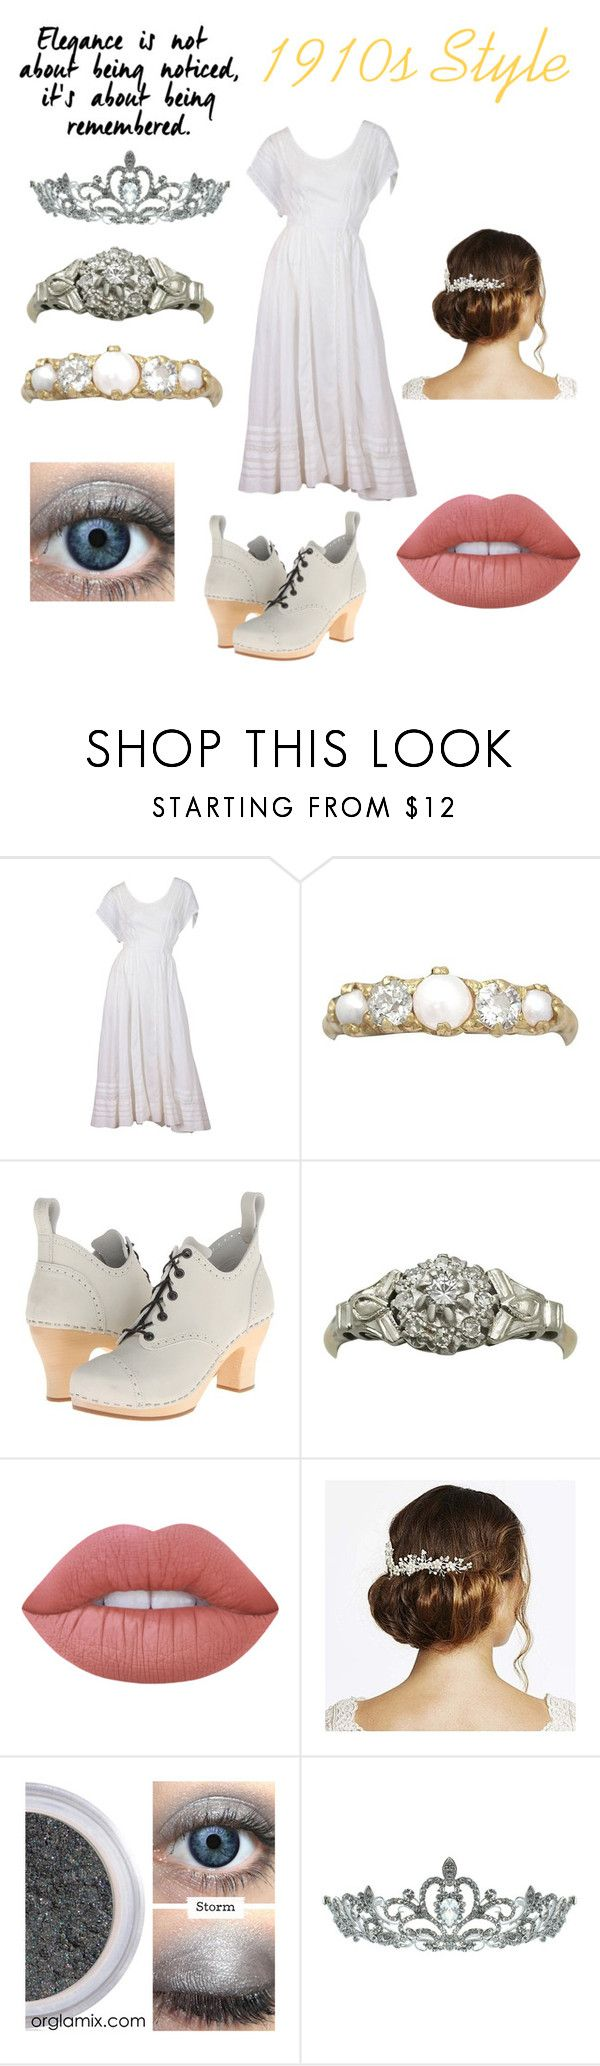 """1910s Style"" by slytherinprincess-2 ❤ liked on Polyvore featuring Batiste, Swedish Hasbeens, Lime Crime, Jon Richard, Kate Marie, diamonds, old, laceupshoes and Edwardiandress"